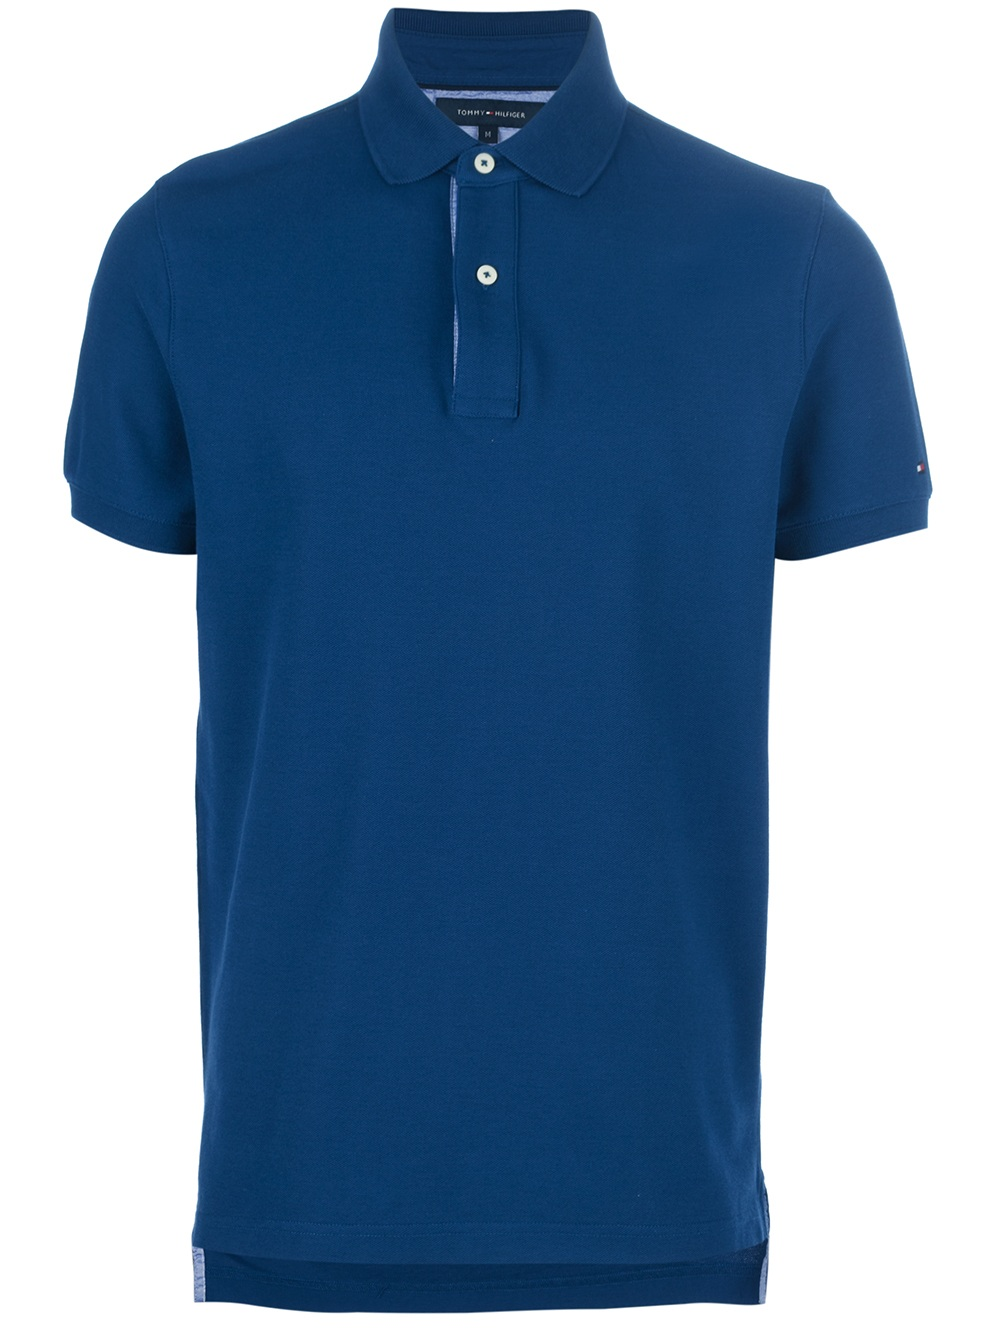 tommy hilfiger classic polo shirt in blue for men navy lyst. Black Bedroom Furniture Sets. Home Design Ideas